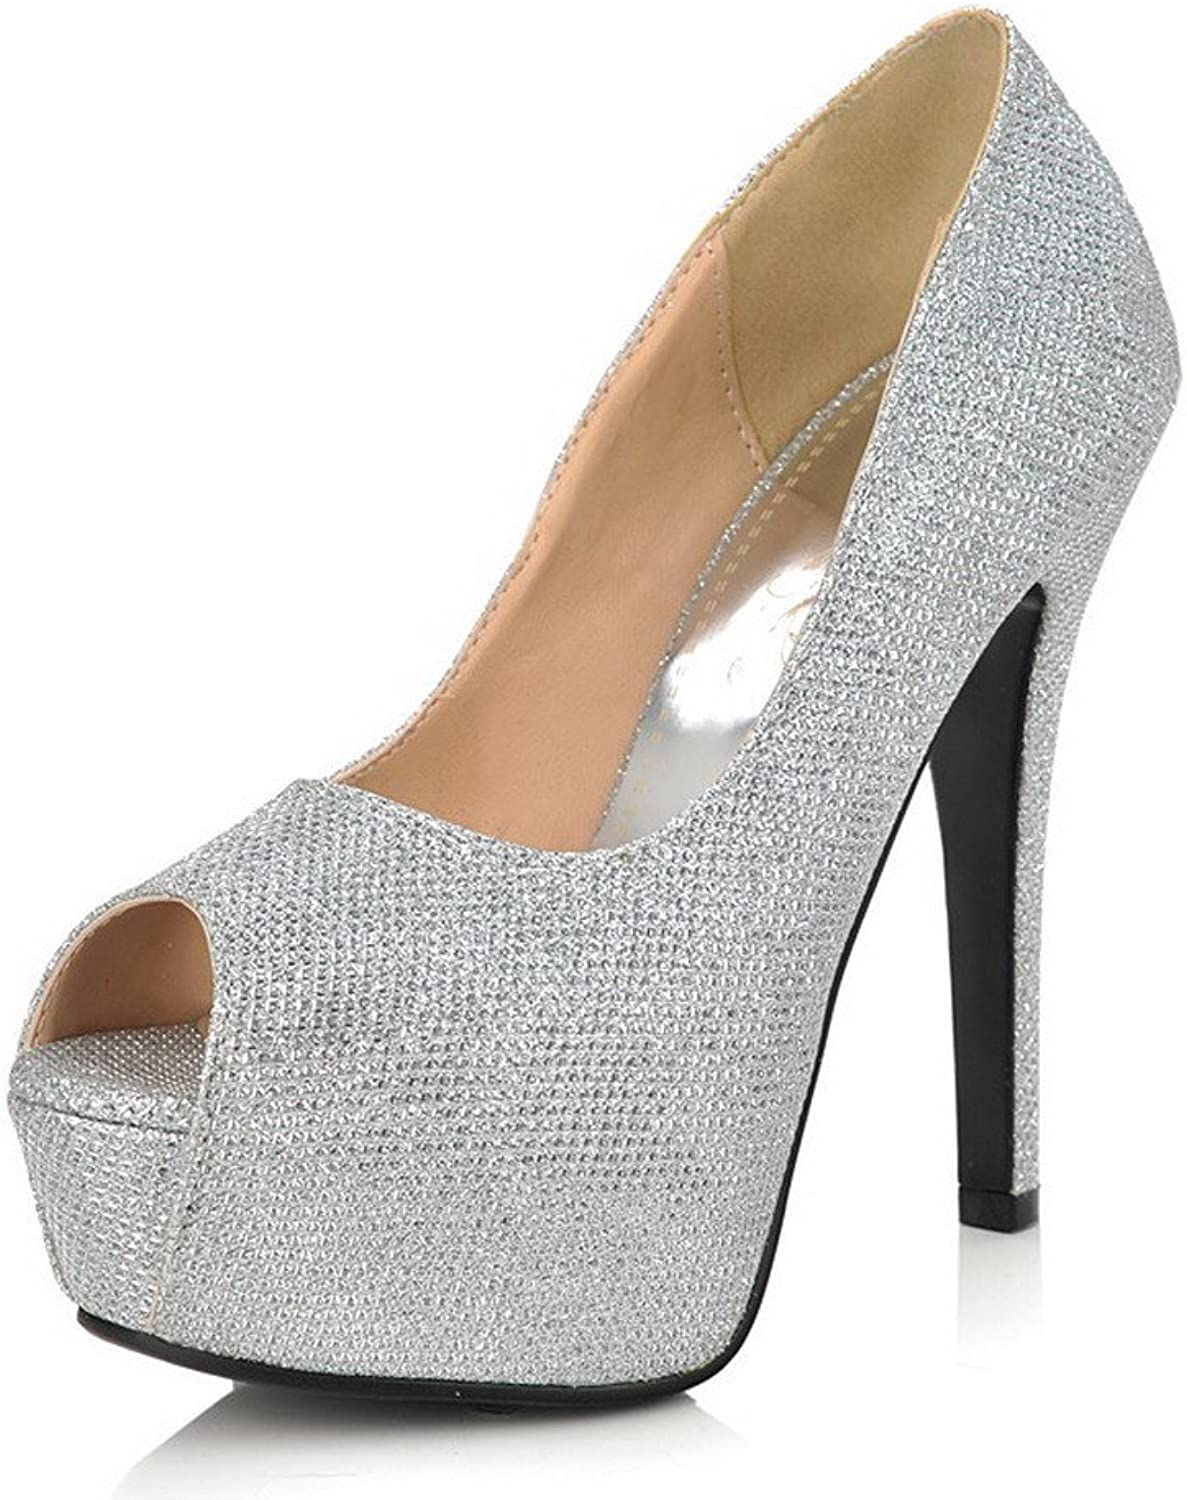 WeiPoot Women Peep Toe High Heel Spikes Stilettos Sequins Soft Material Solid Sandals with Platform, Silver, 7.5 B(M) US